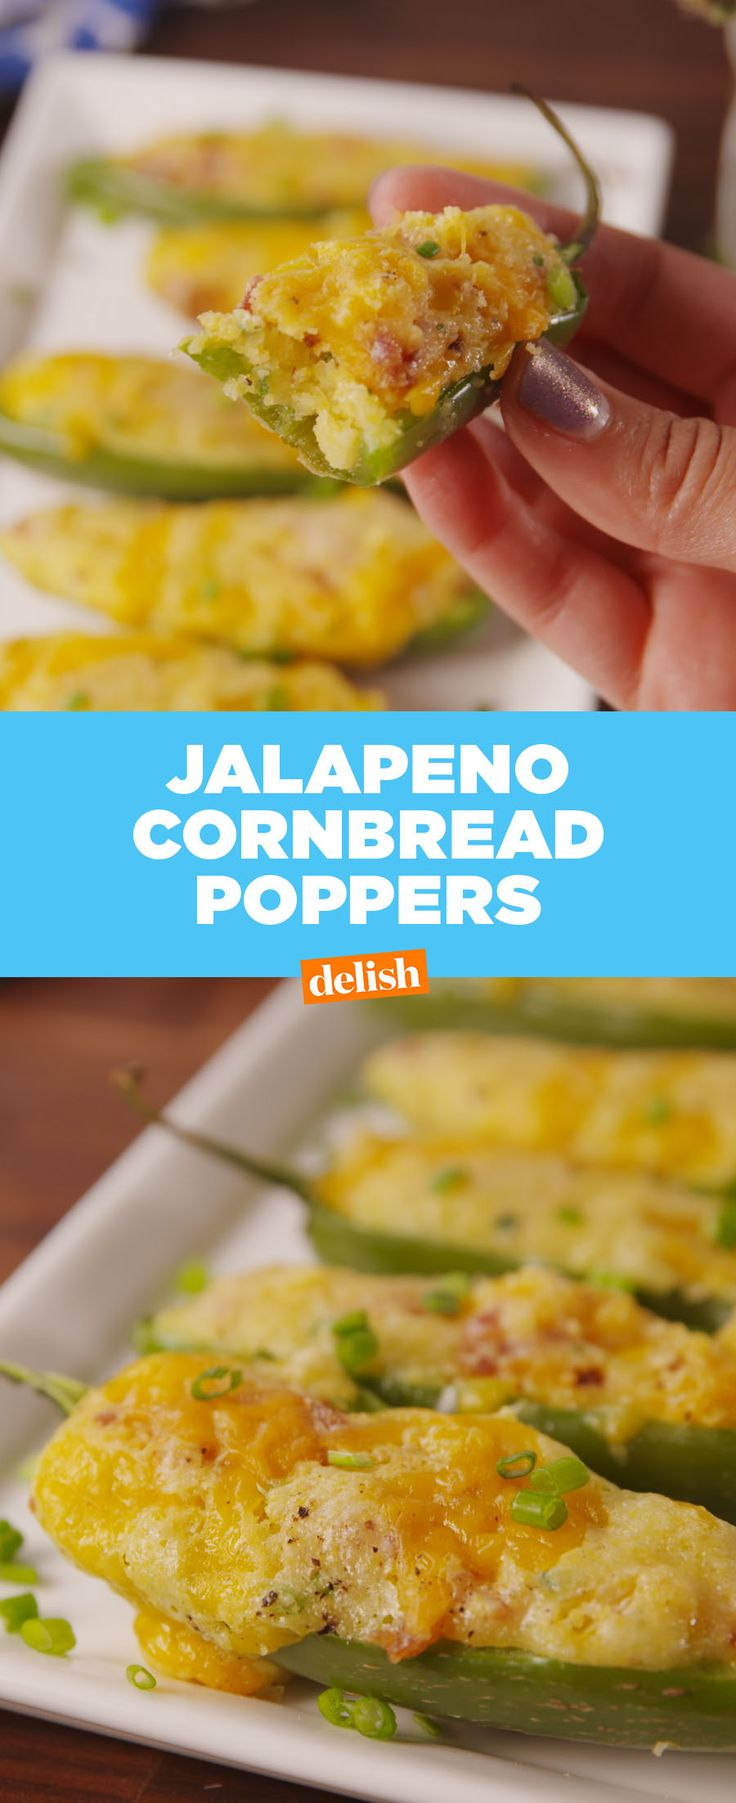 If you love jalapeno poppers —this mashup will blow your mind. Get the recipe at Delish.com.